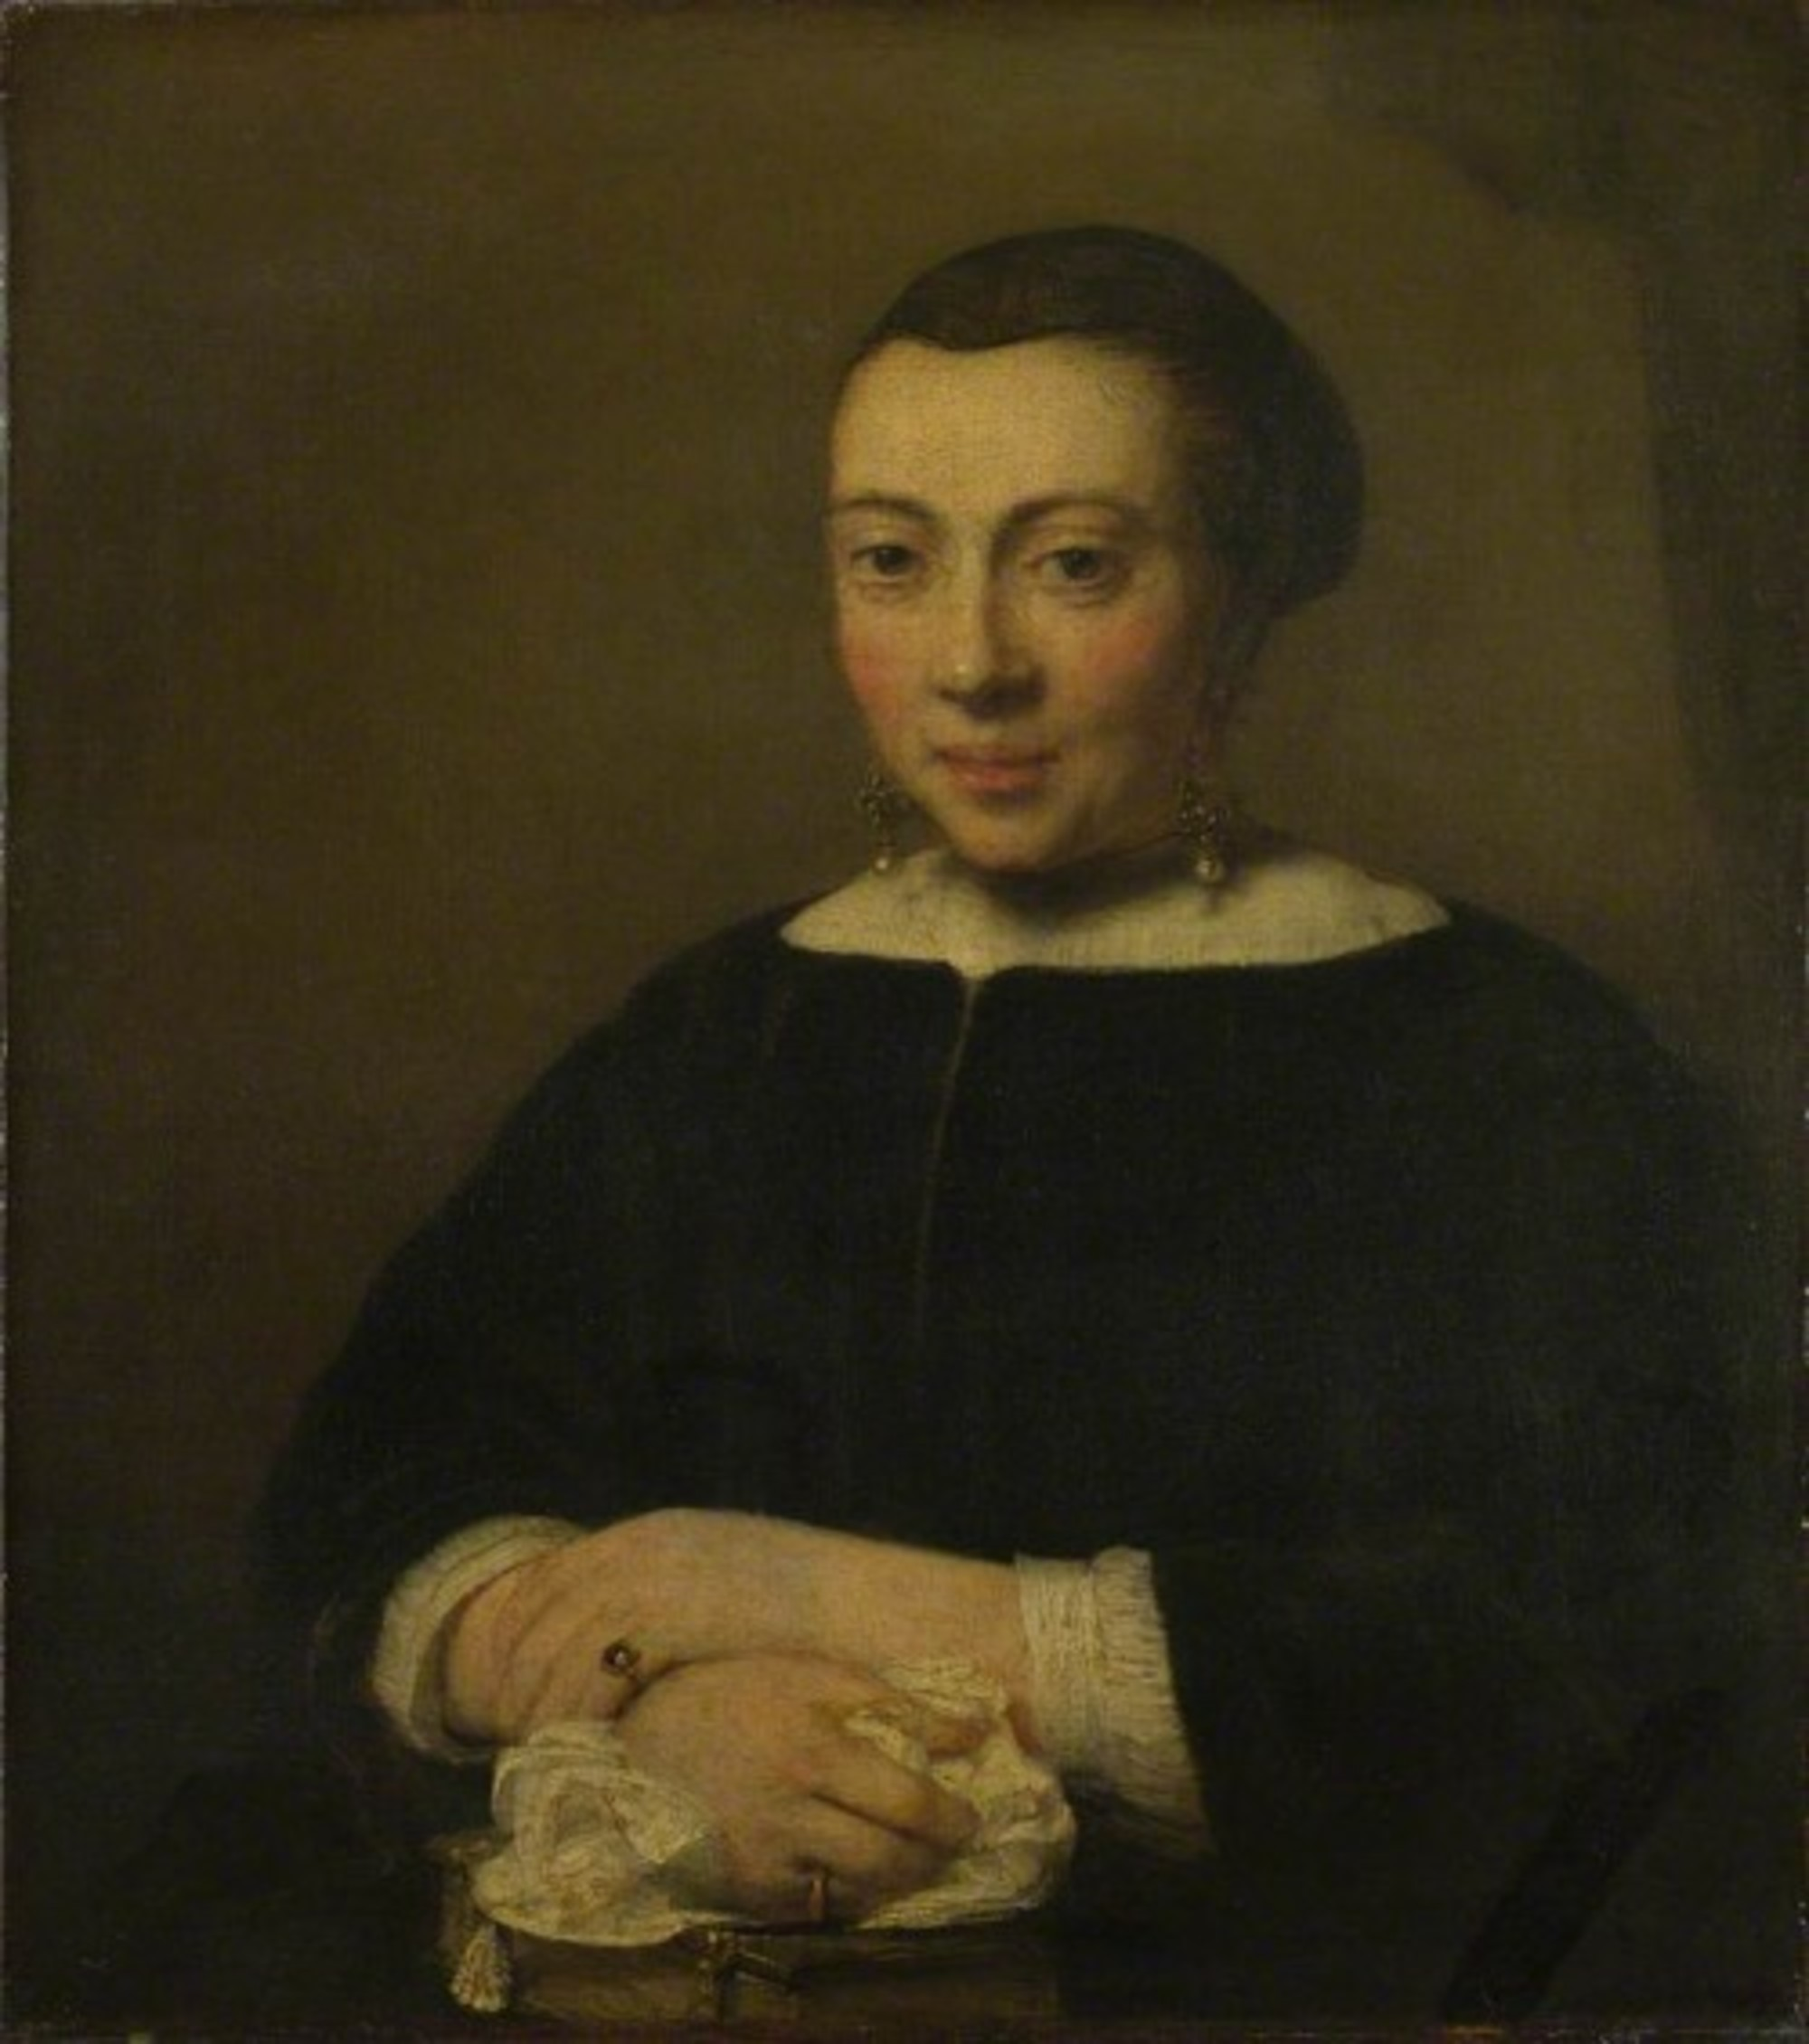 Willem-Drost---Portrait-of-a-Young-Woman-with-her-Hands-Folded-on-a-Book.jpg